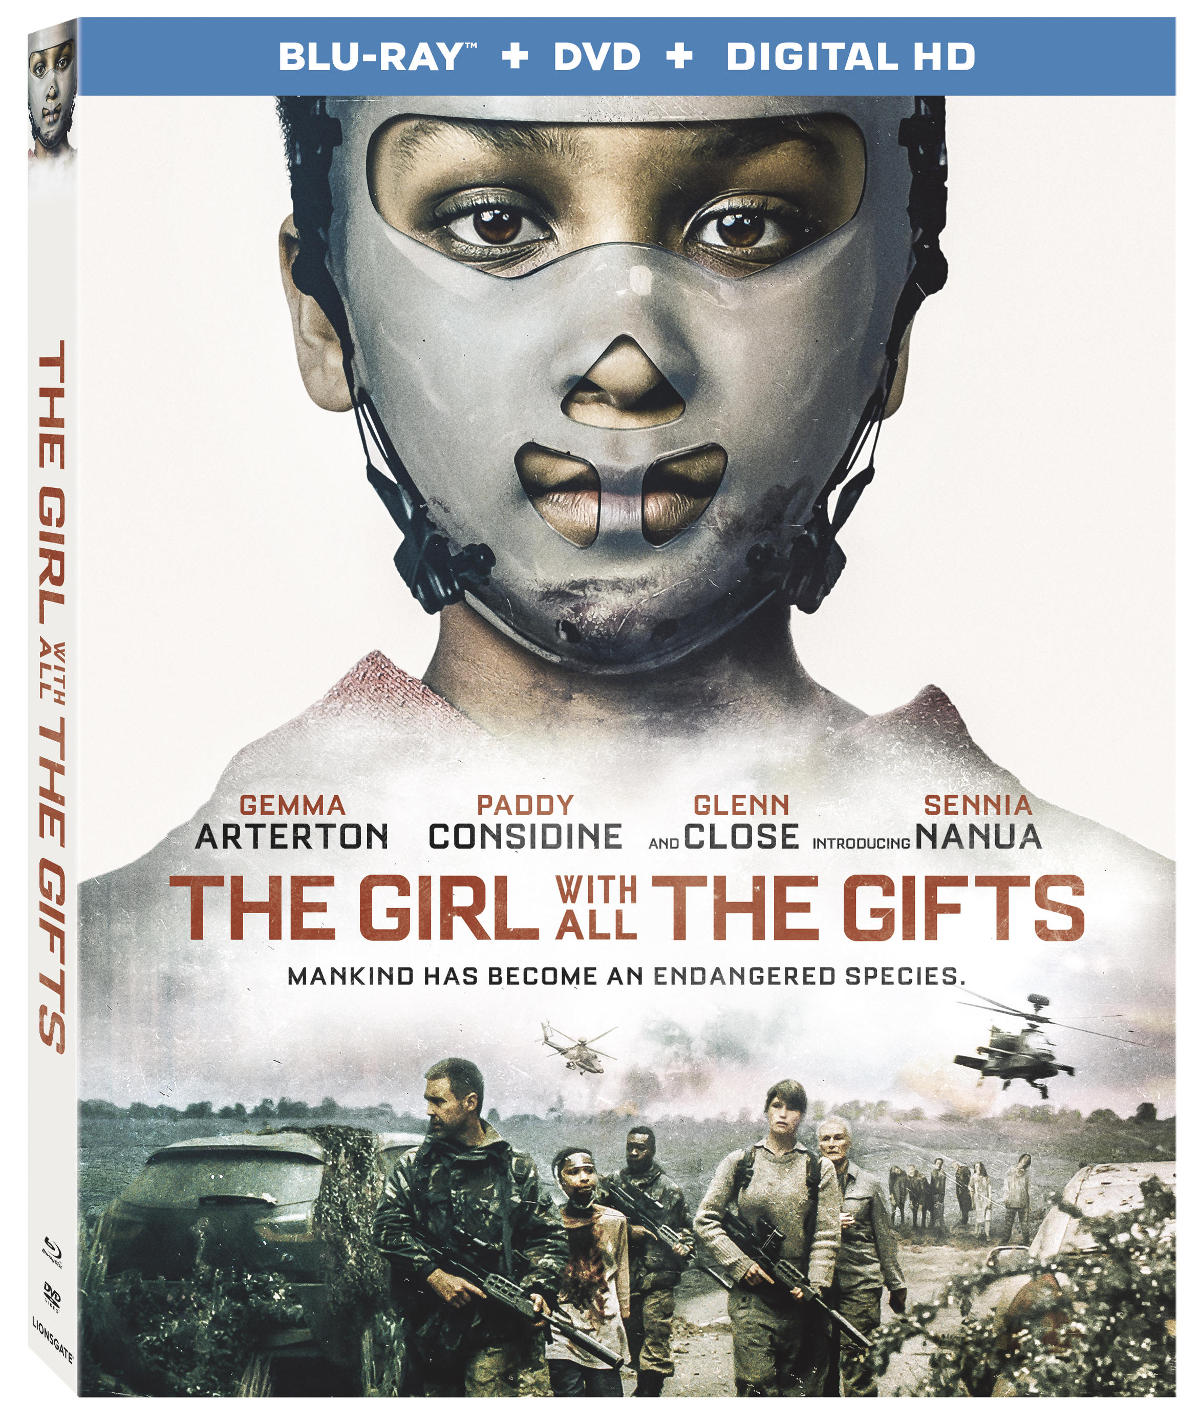 THE GIRL WITH ALL THE GIFTS Blu-ray, DVD & Digital HD ...